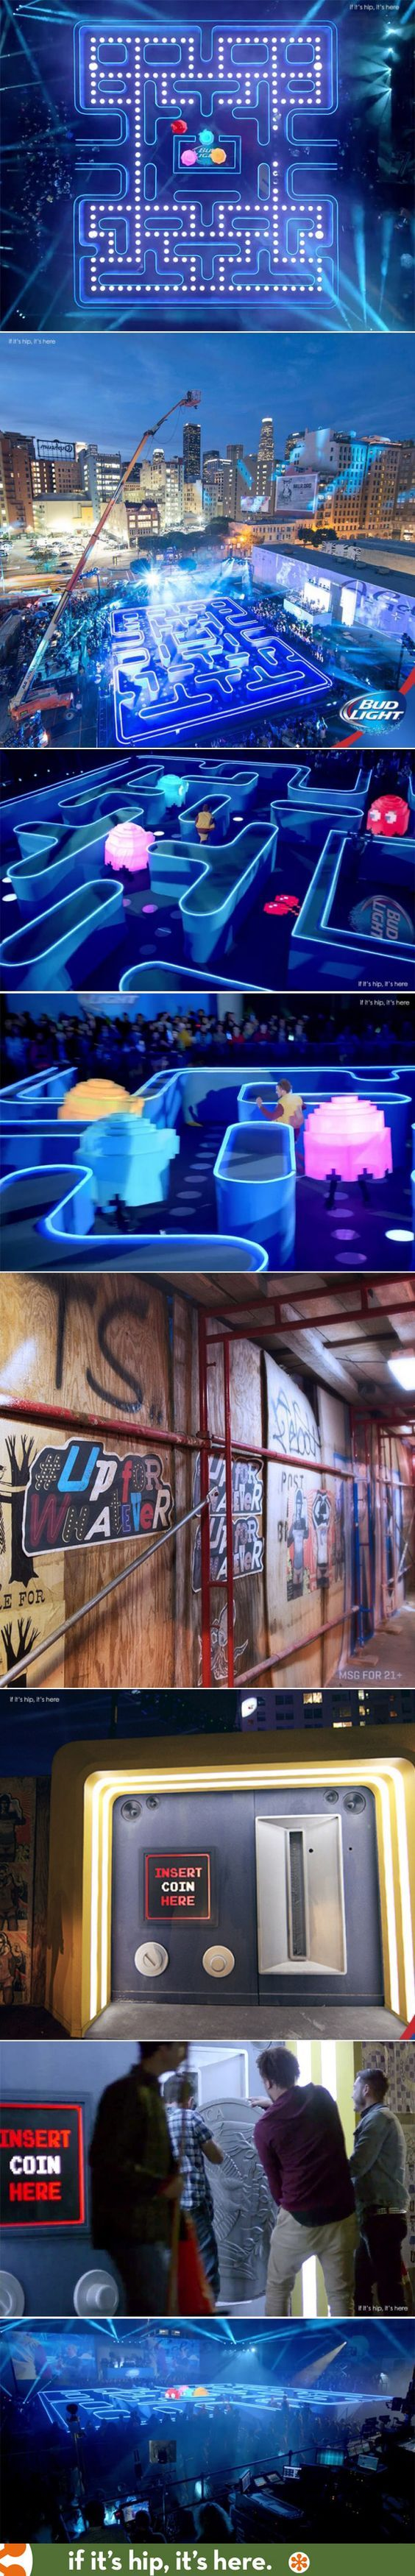 So cool! A real life sized Pac Man Game created for the Bud Light Superbowl spot Coin. #experiential: